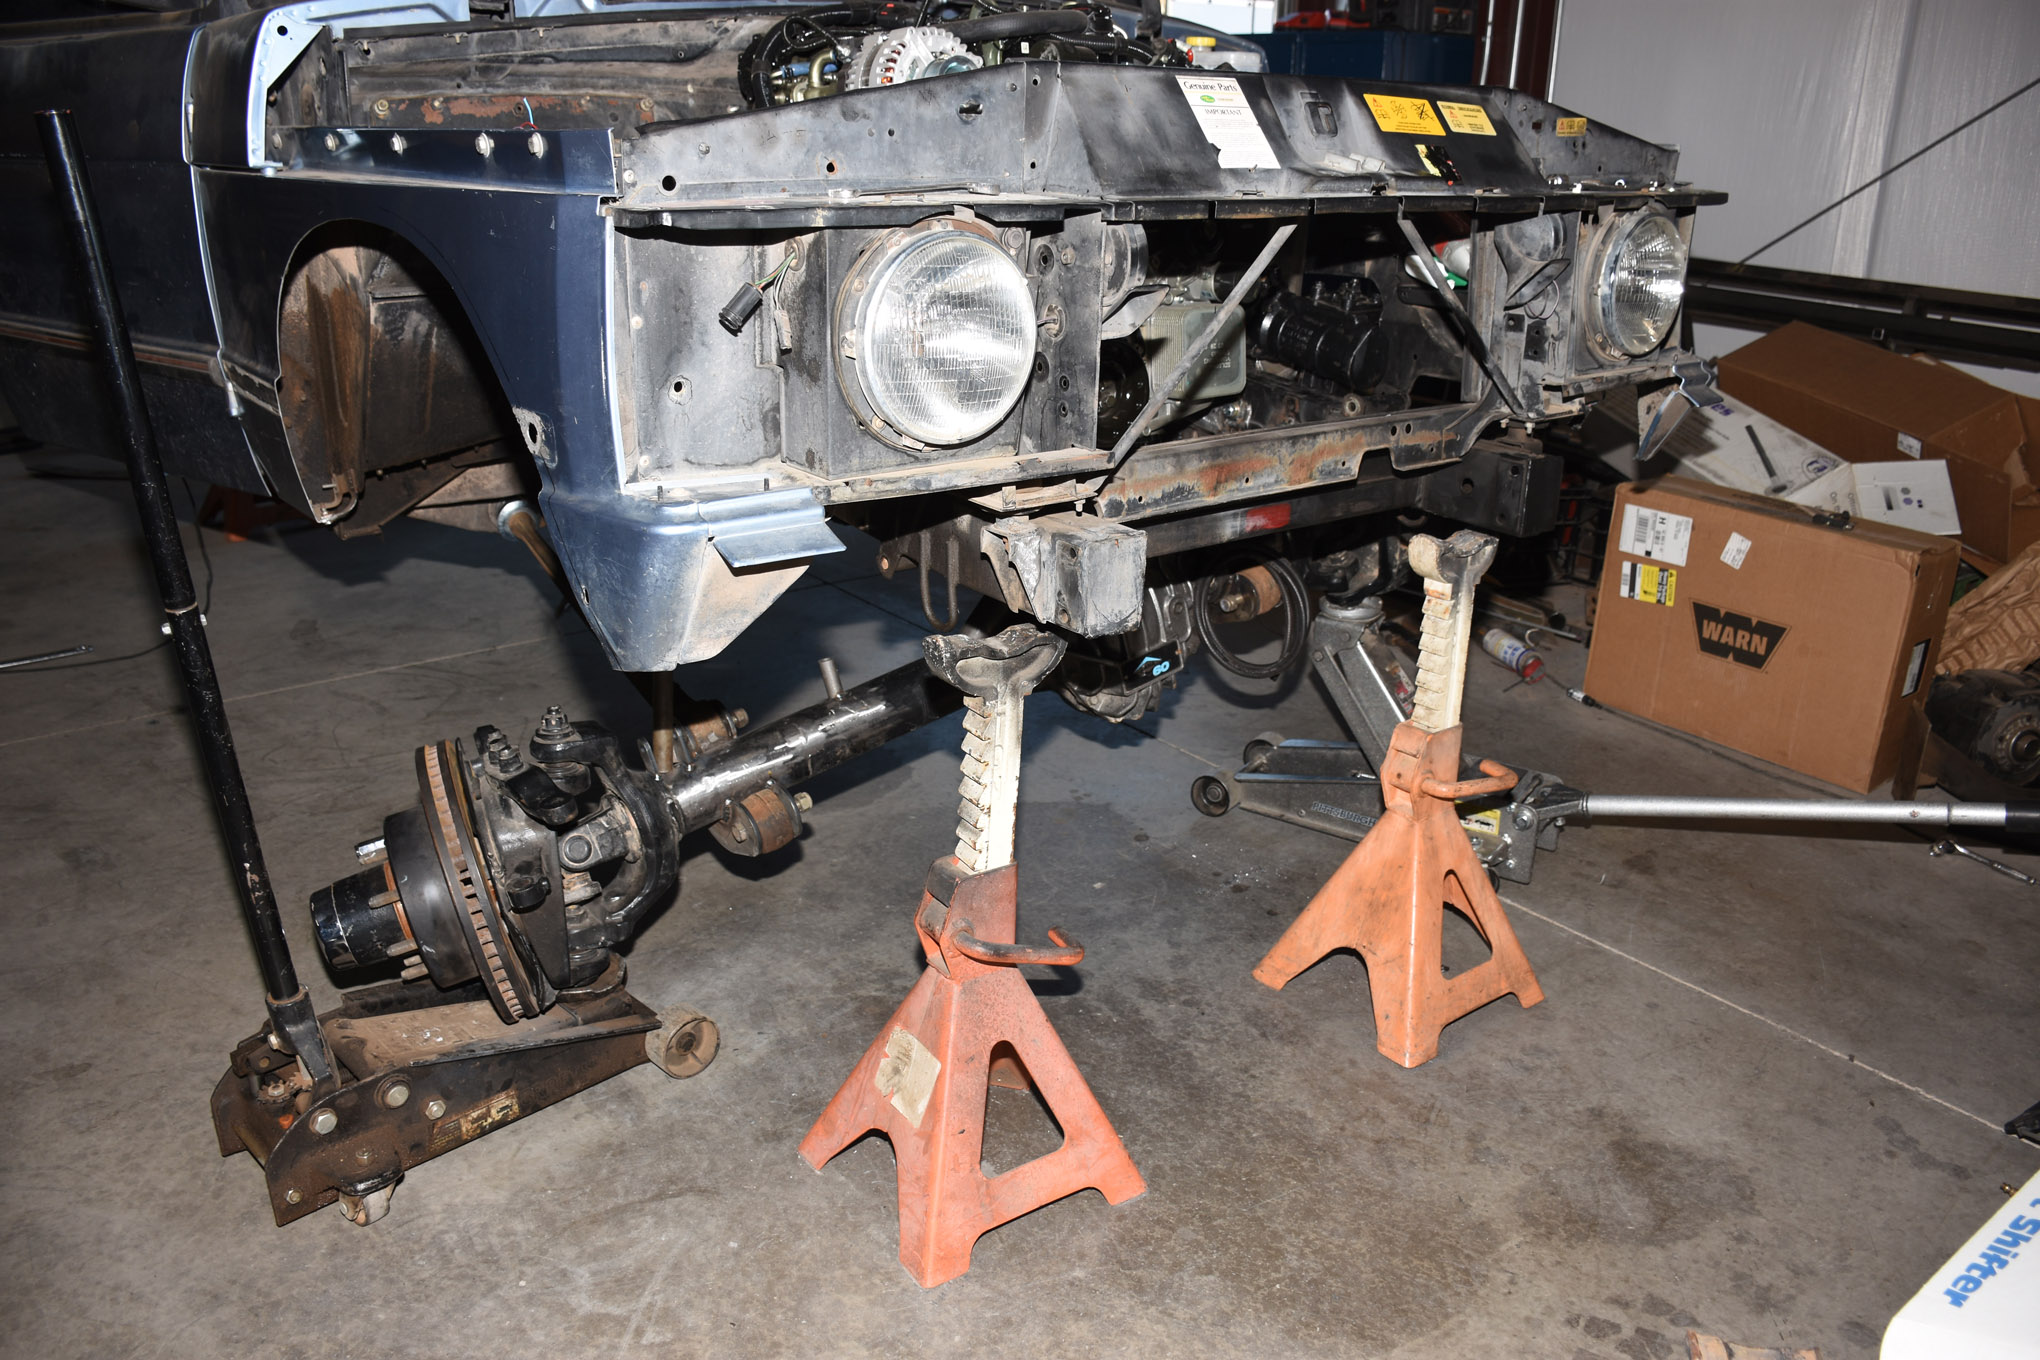 With the suspension roughly built we can cycle the suspension front and rear to check for clearances and measure for the Skyjacker M95 monotube rear shocks we will run. We reused the factory Rover rear upper shock mounts and welded on lower shock mounts from RuffStuff Specialities.